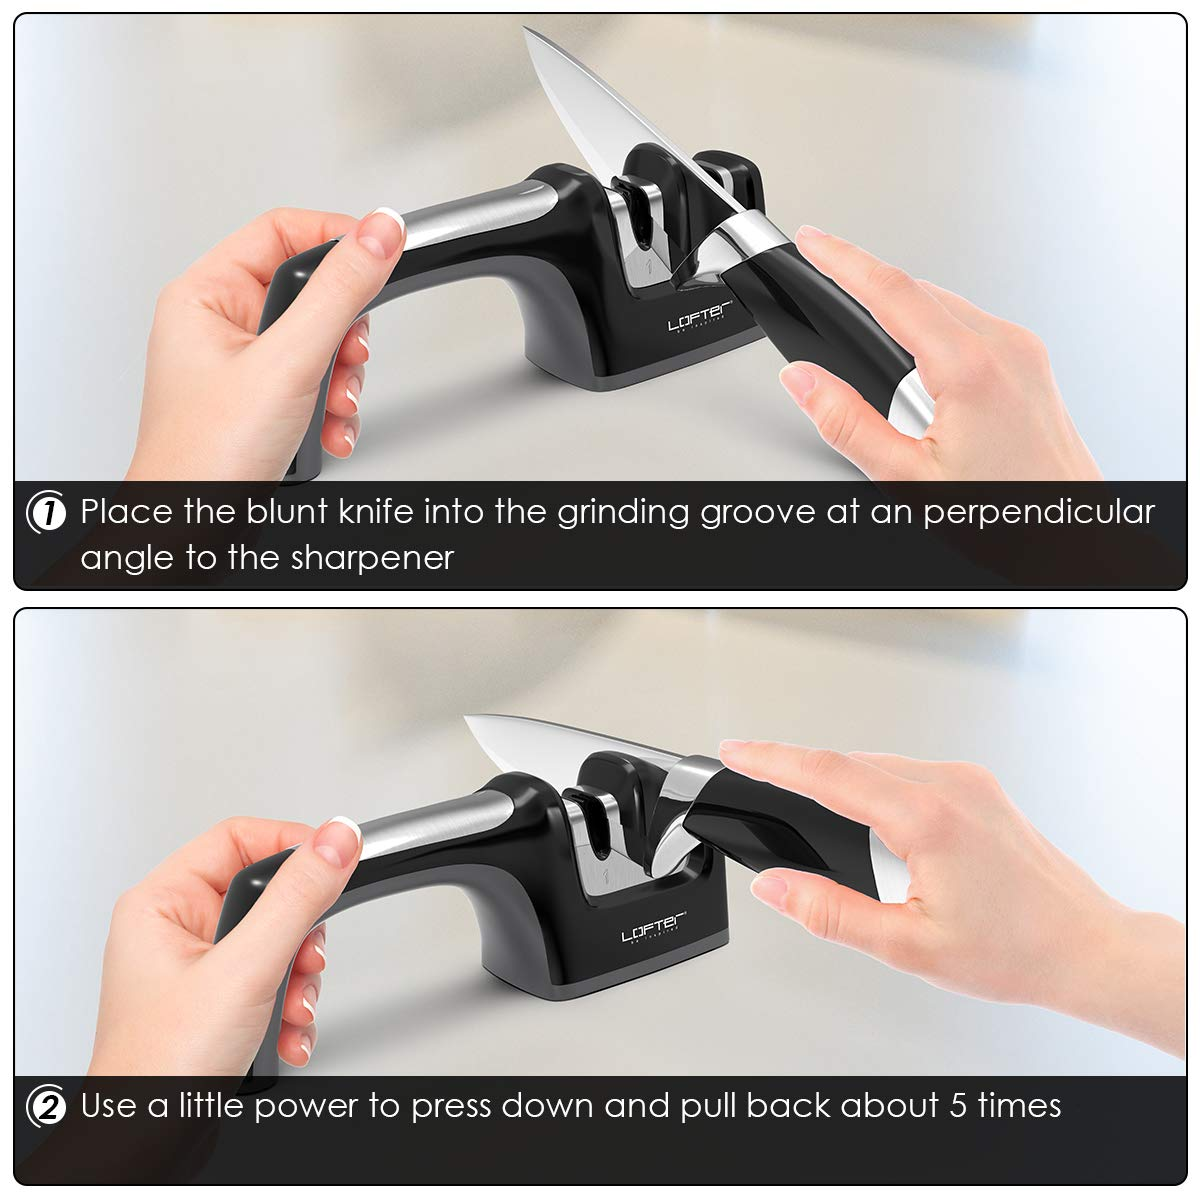 Kitchen Knife Sharpener, LOFTER 2 Stage Knife Sharpening with Angle Adjustment Knob, Diamond and Ceramic, Restore and Polish Blades, Non-slip Base Sharpening Knife, Easy to Control, Black by LOFTER (Image #8)